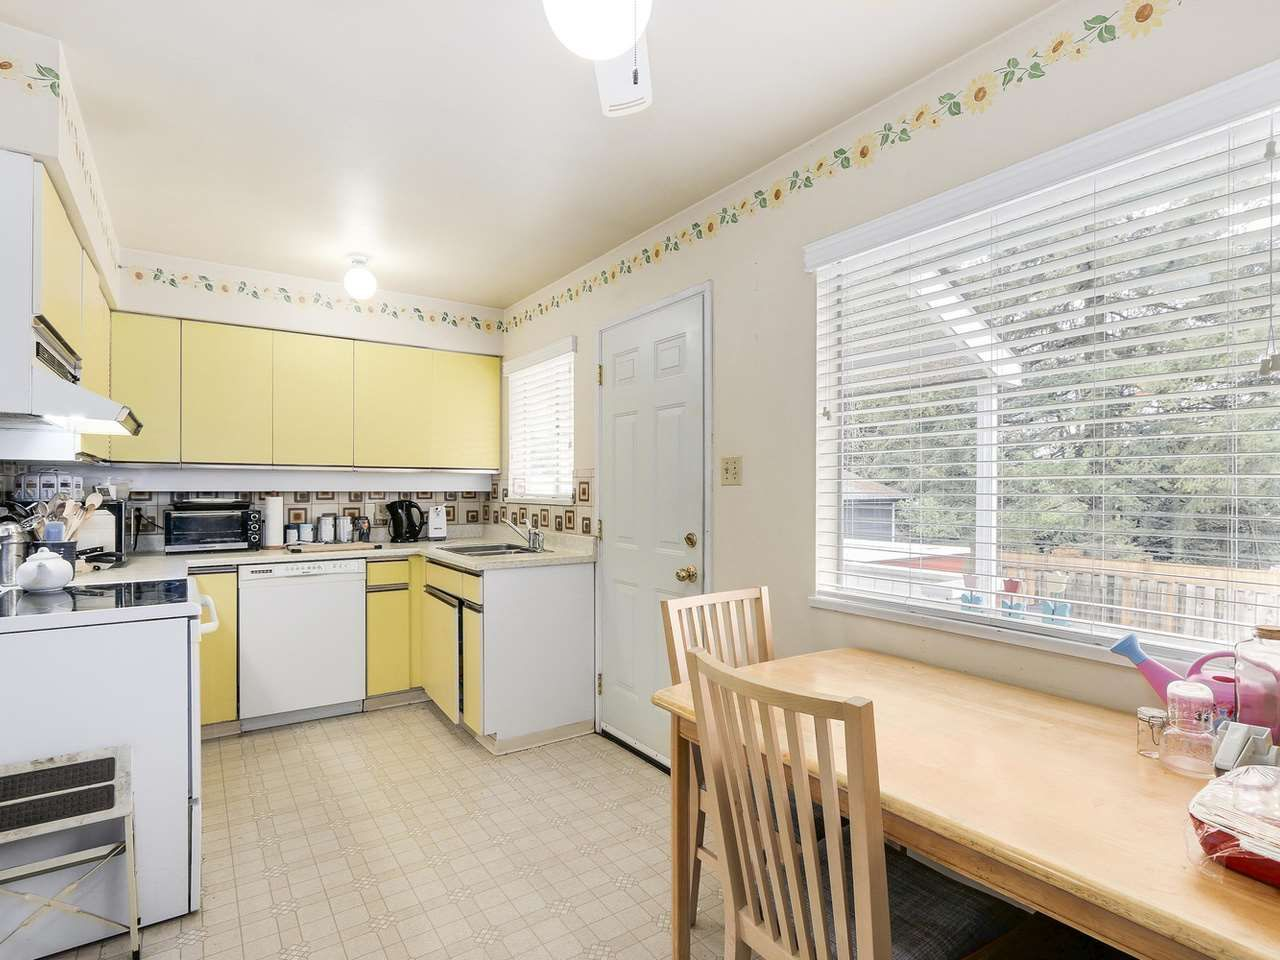 Photo 7: Photos: 731 LINTON Street in Coquitlam: Central Coquitlam House for sale : MLS®# R2157896